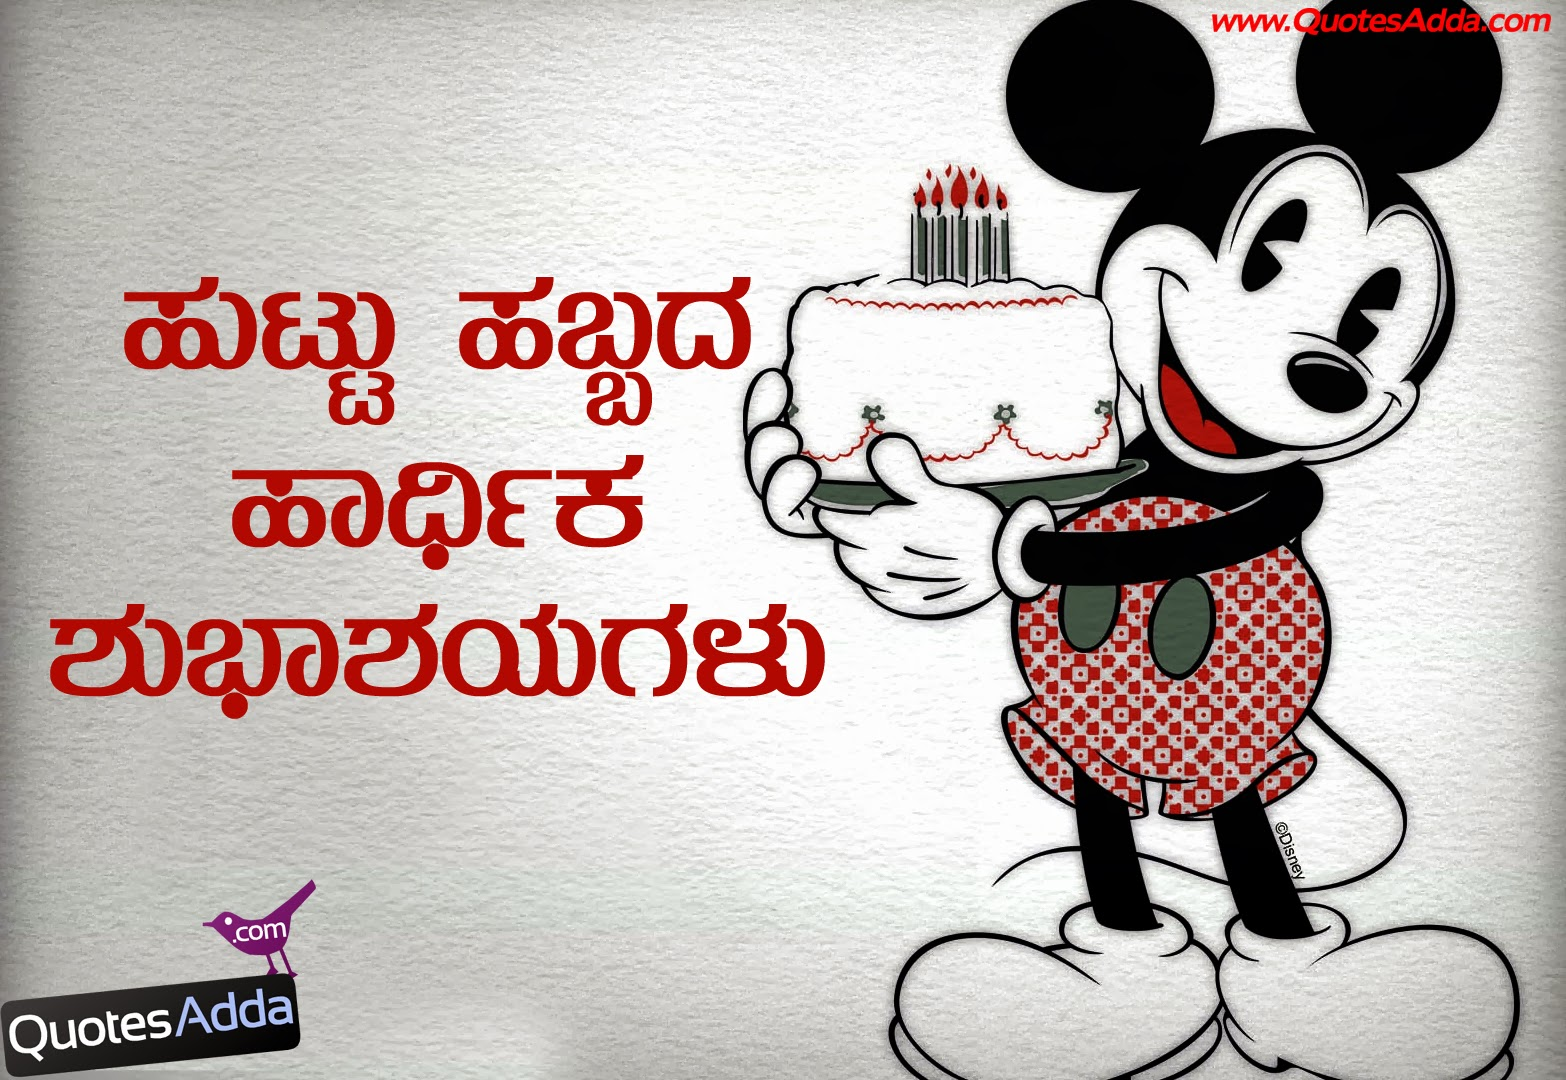 birthday wish to husband in kannada also relates to tezkar birthday messages wishes and birthday greetings kannadawebdunia kannada news